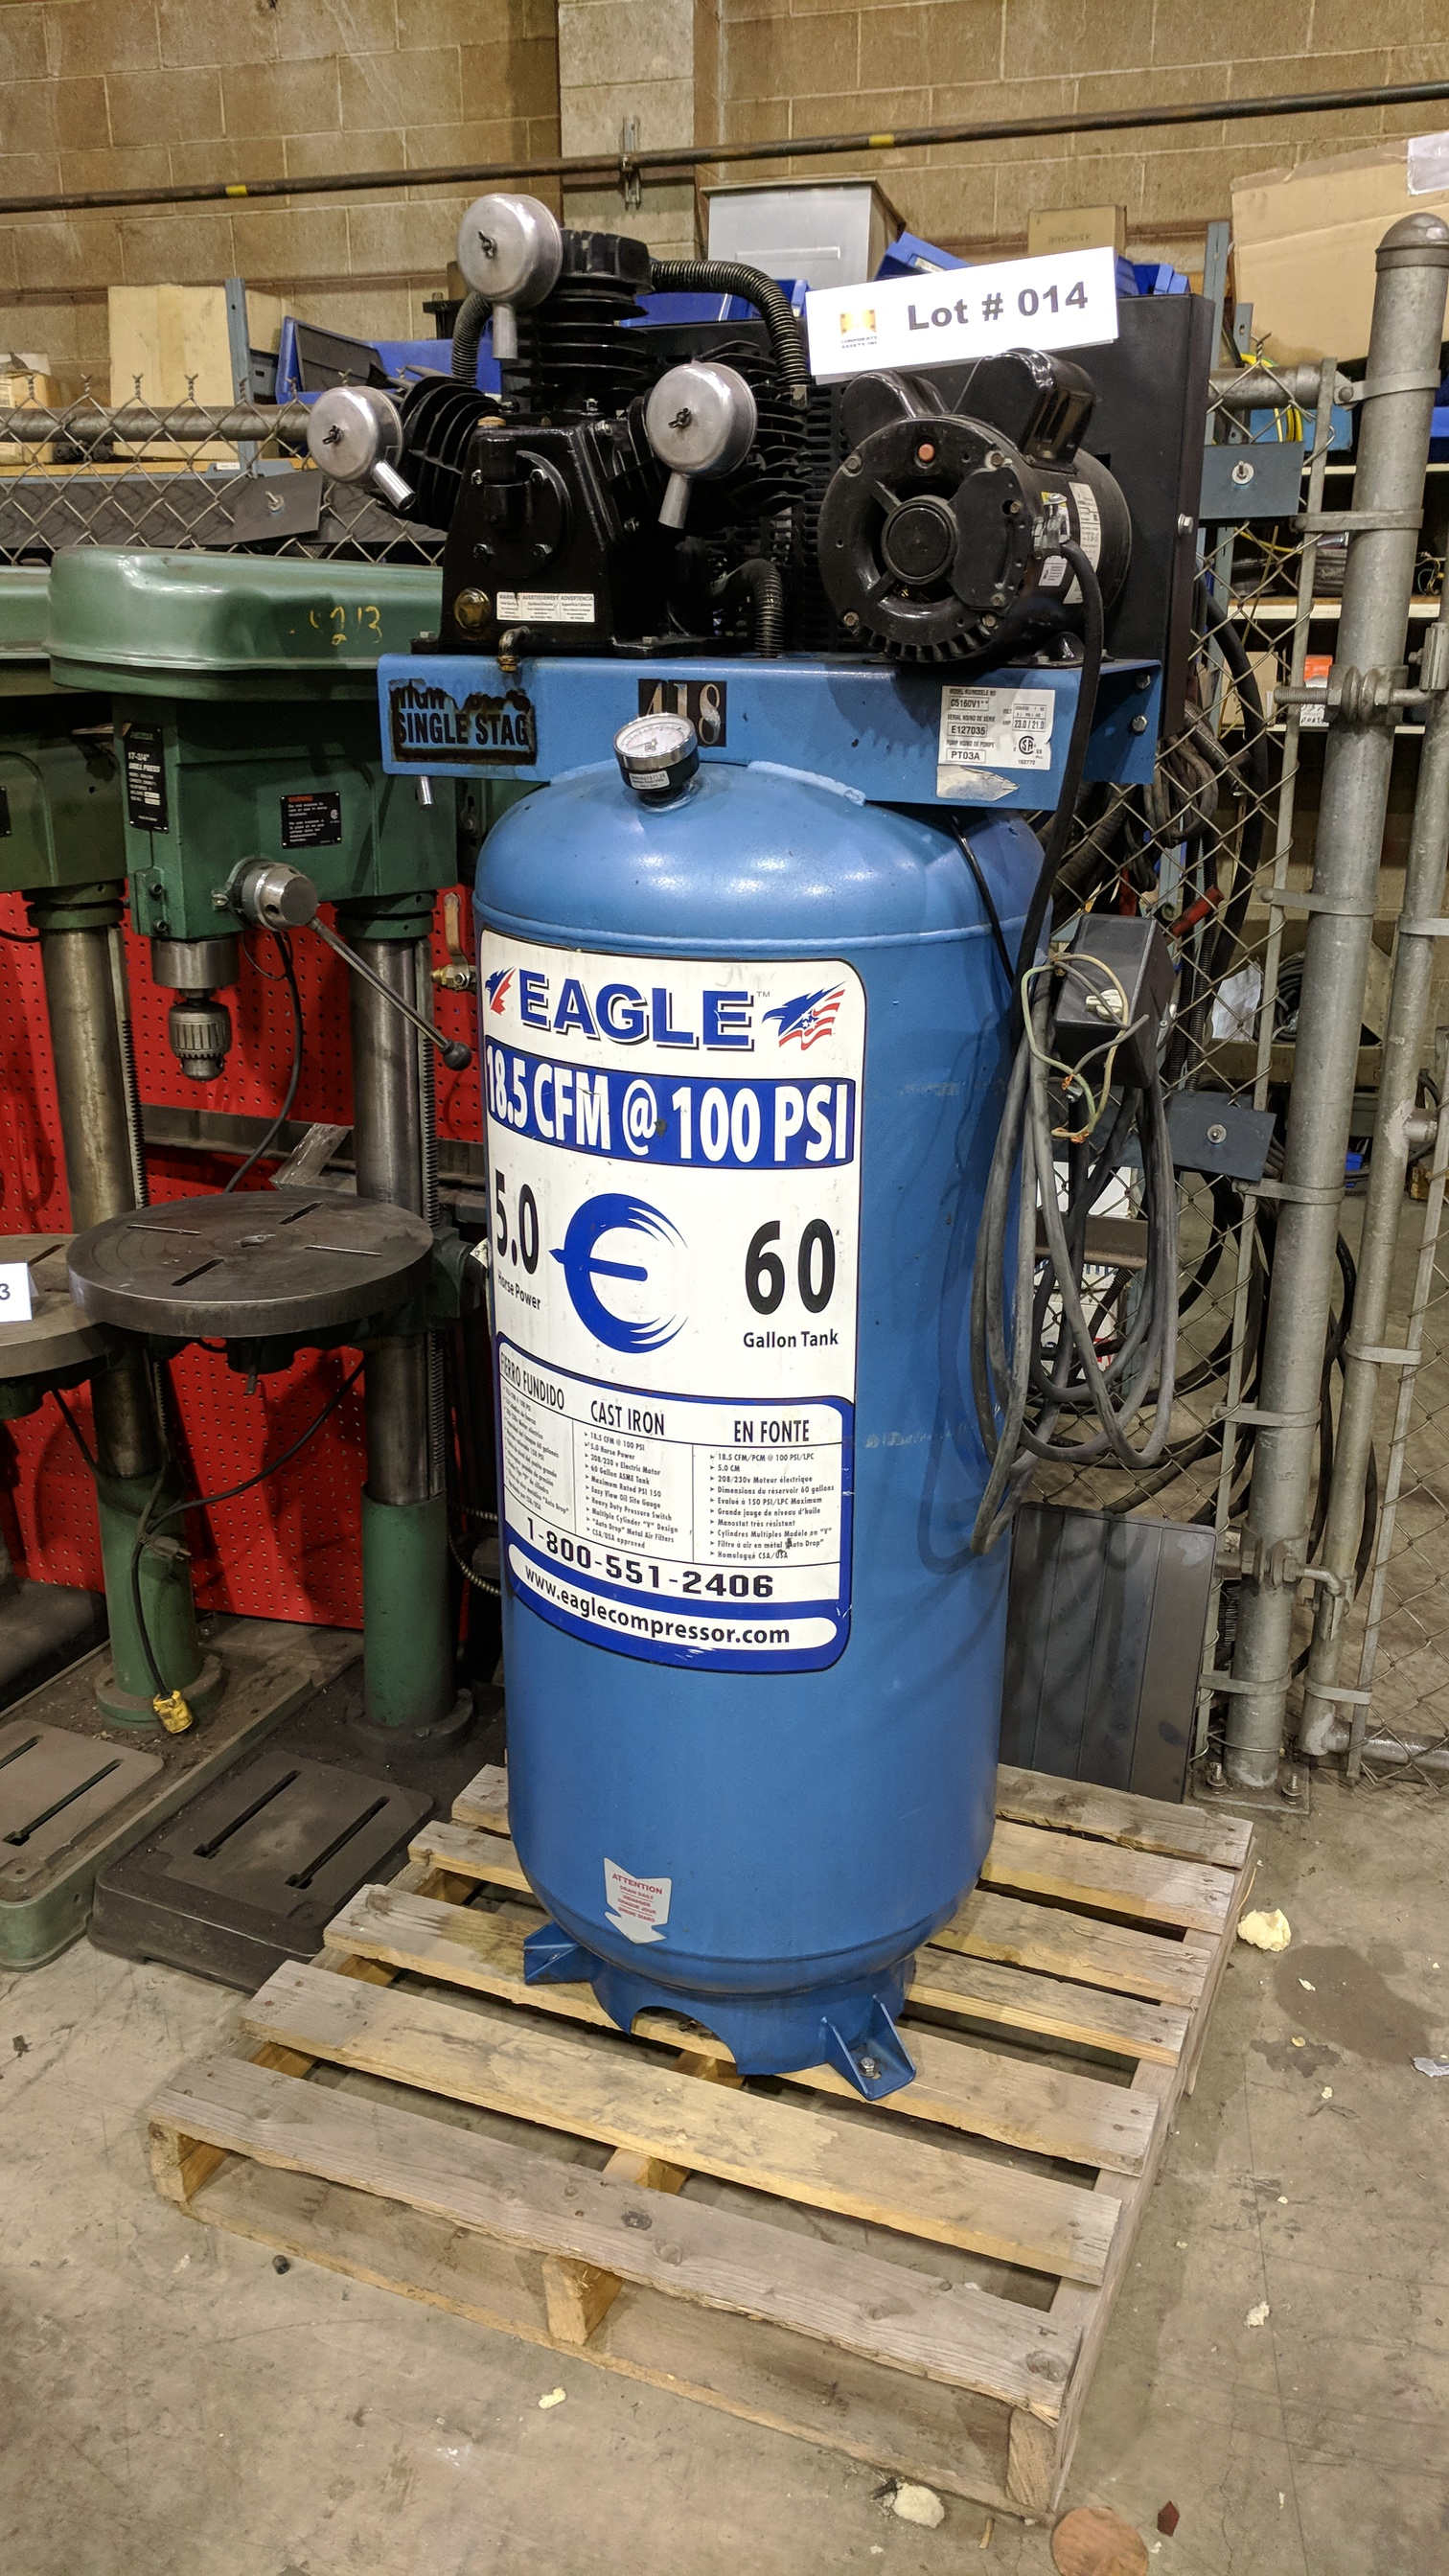 EAGLE C5160V1 PISTON TYPE TANK MOUNTED AIR COMPRESSOR WITH 5HP, 60 GAL, 18.5 CFM @ 100 PSI CAPACITY,